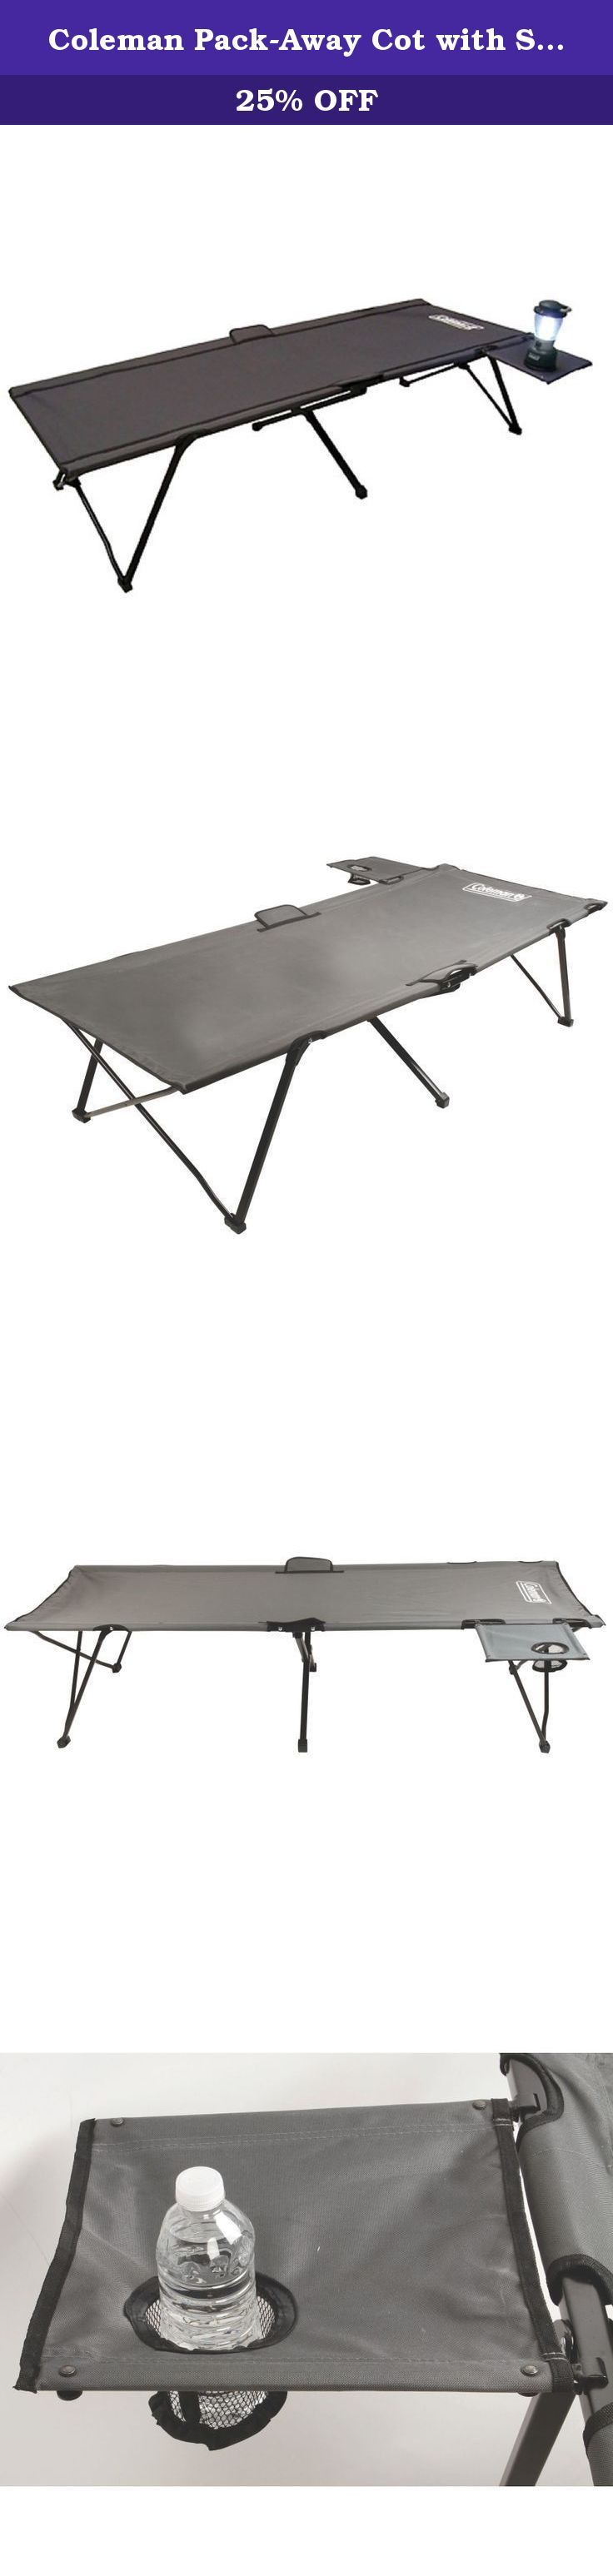 coleman pack away cot with side table take the perfect spot to rest rh pinterest com